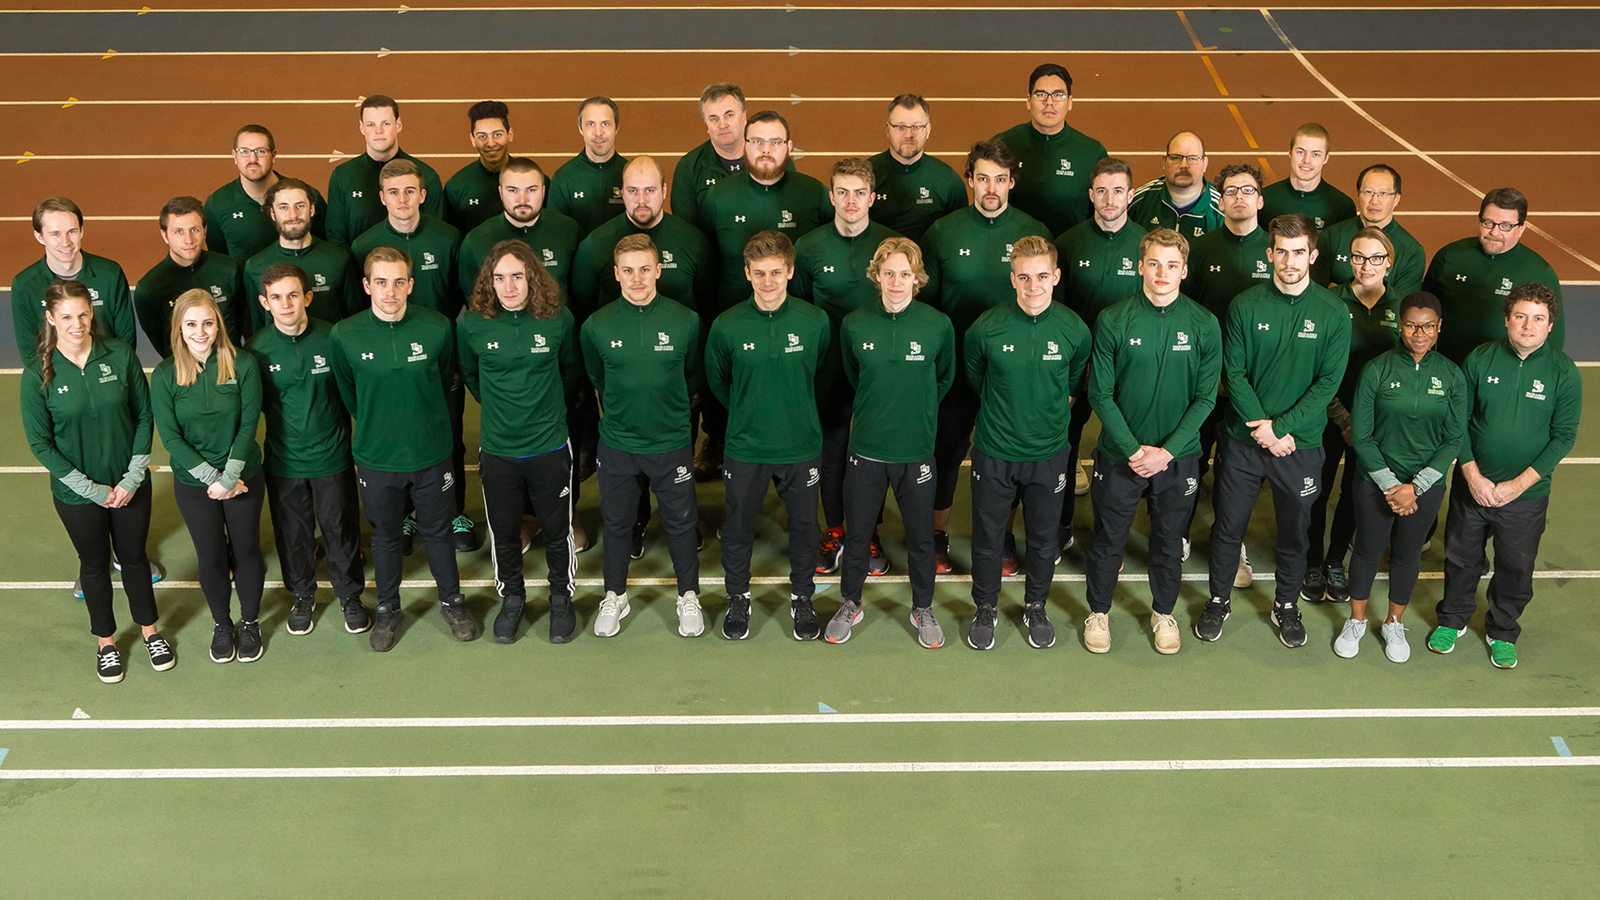 2018-19 Men's Track and Field Roster - University of